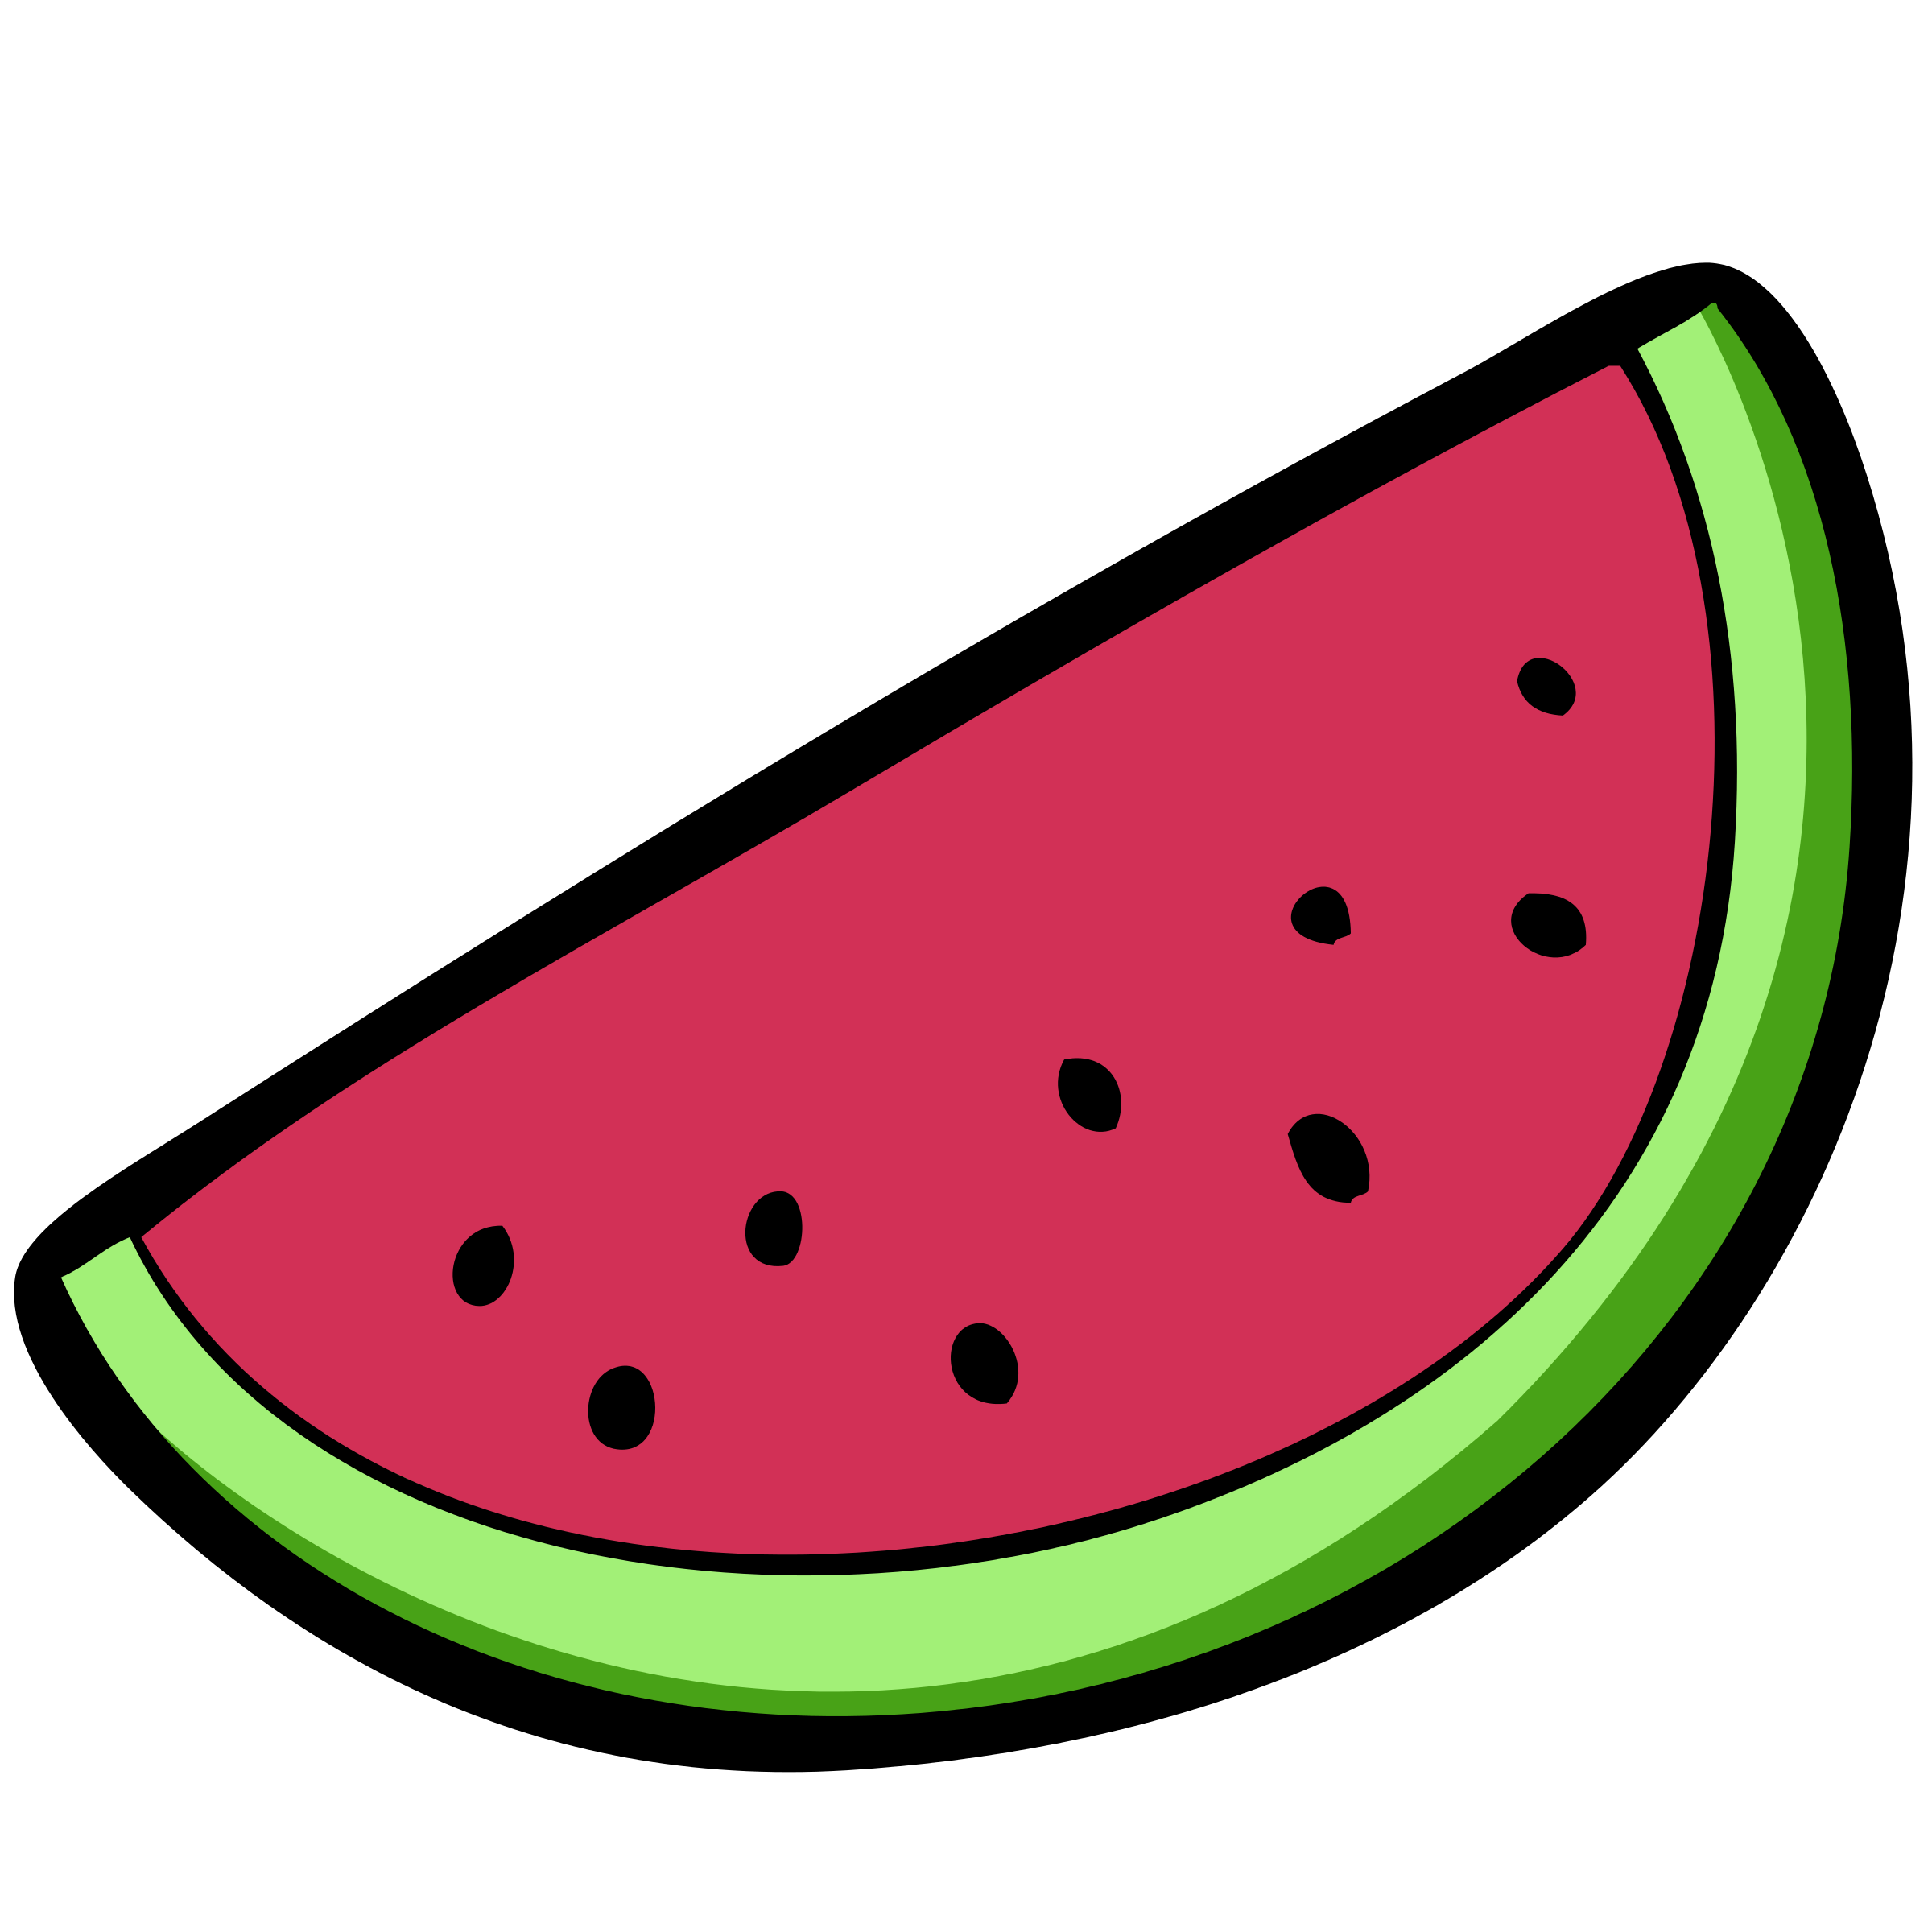 Watermelon clipart animated, Watermelon animated Transparent.